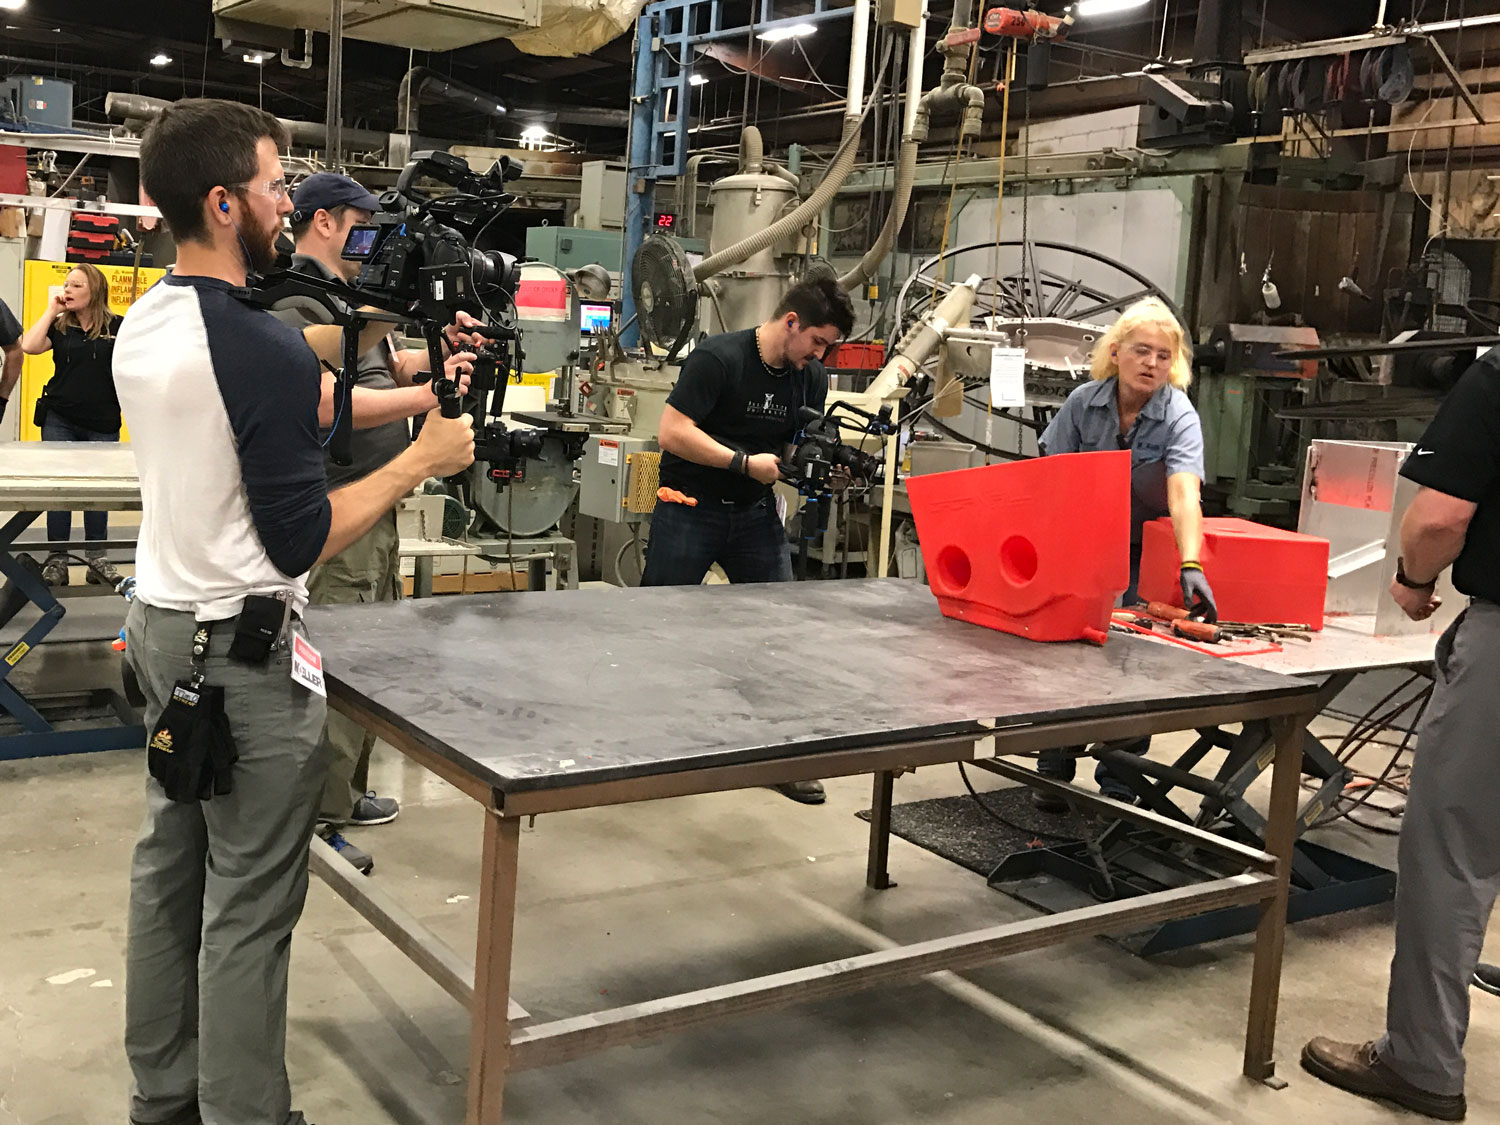 On location in factory filming a video